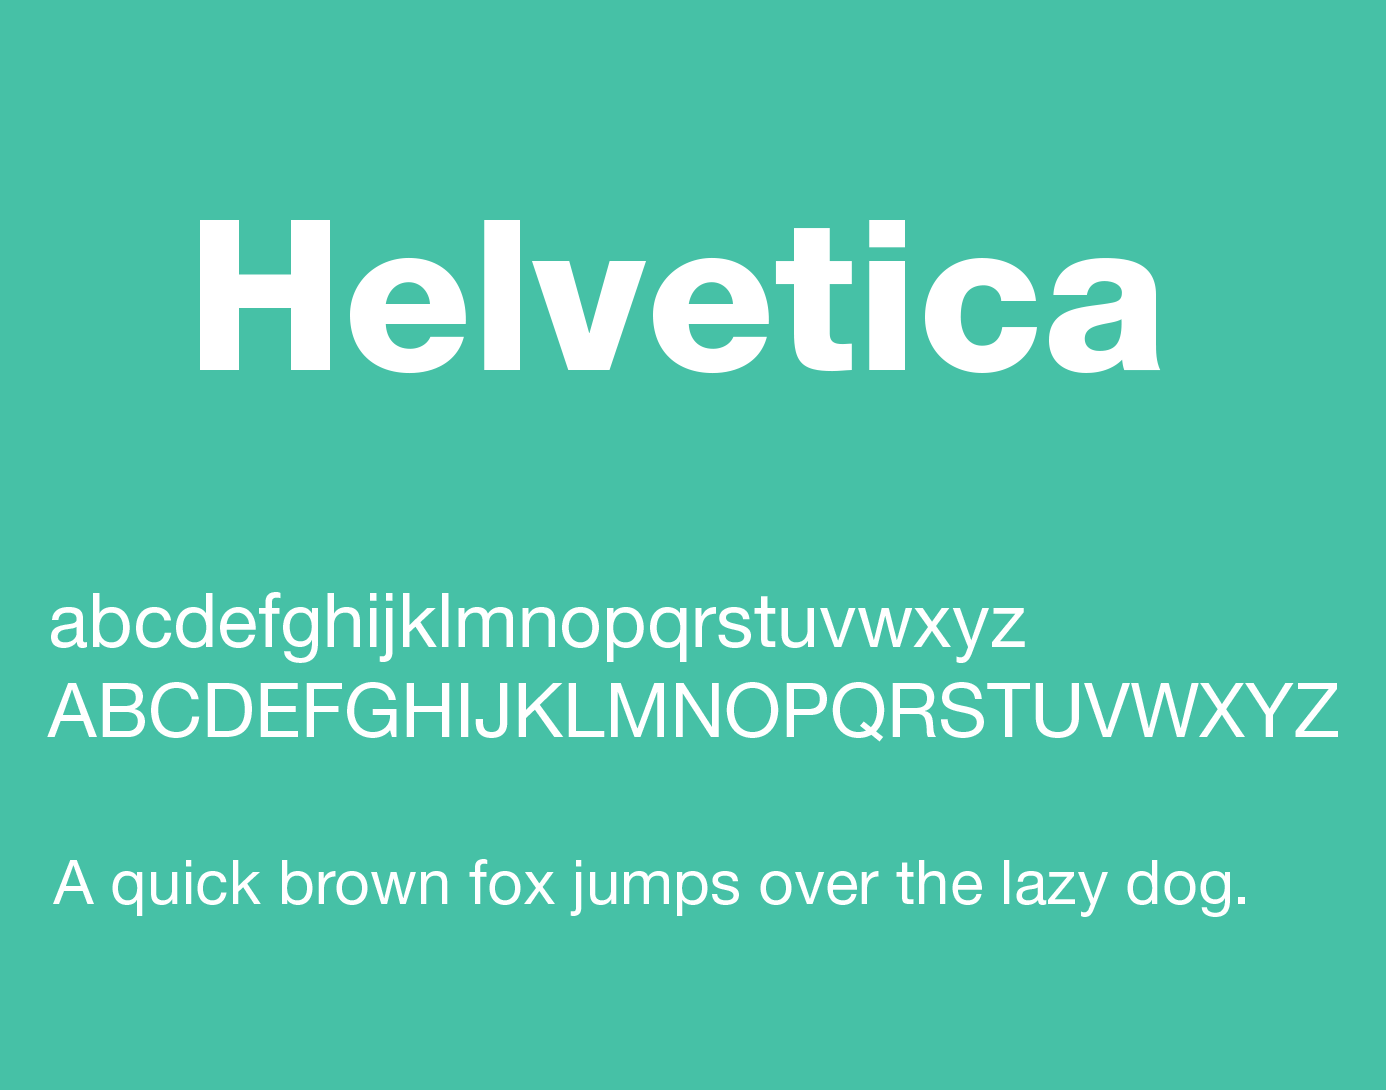 Helvetica Font Free Download - Free Fonts | Helvetica font free, Free fonts  download, Helvetica font